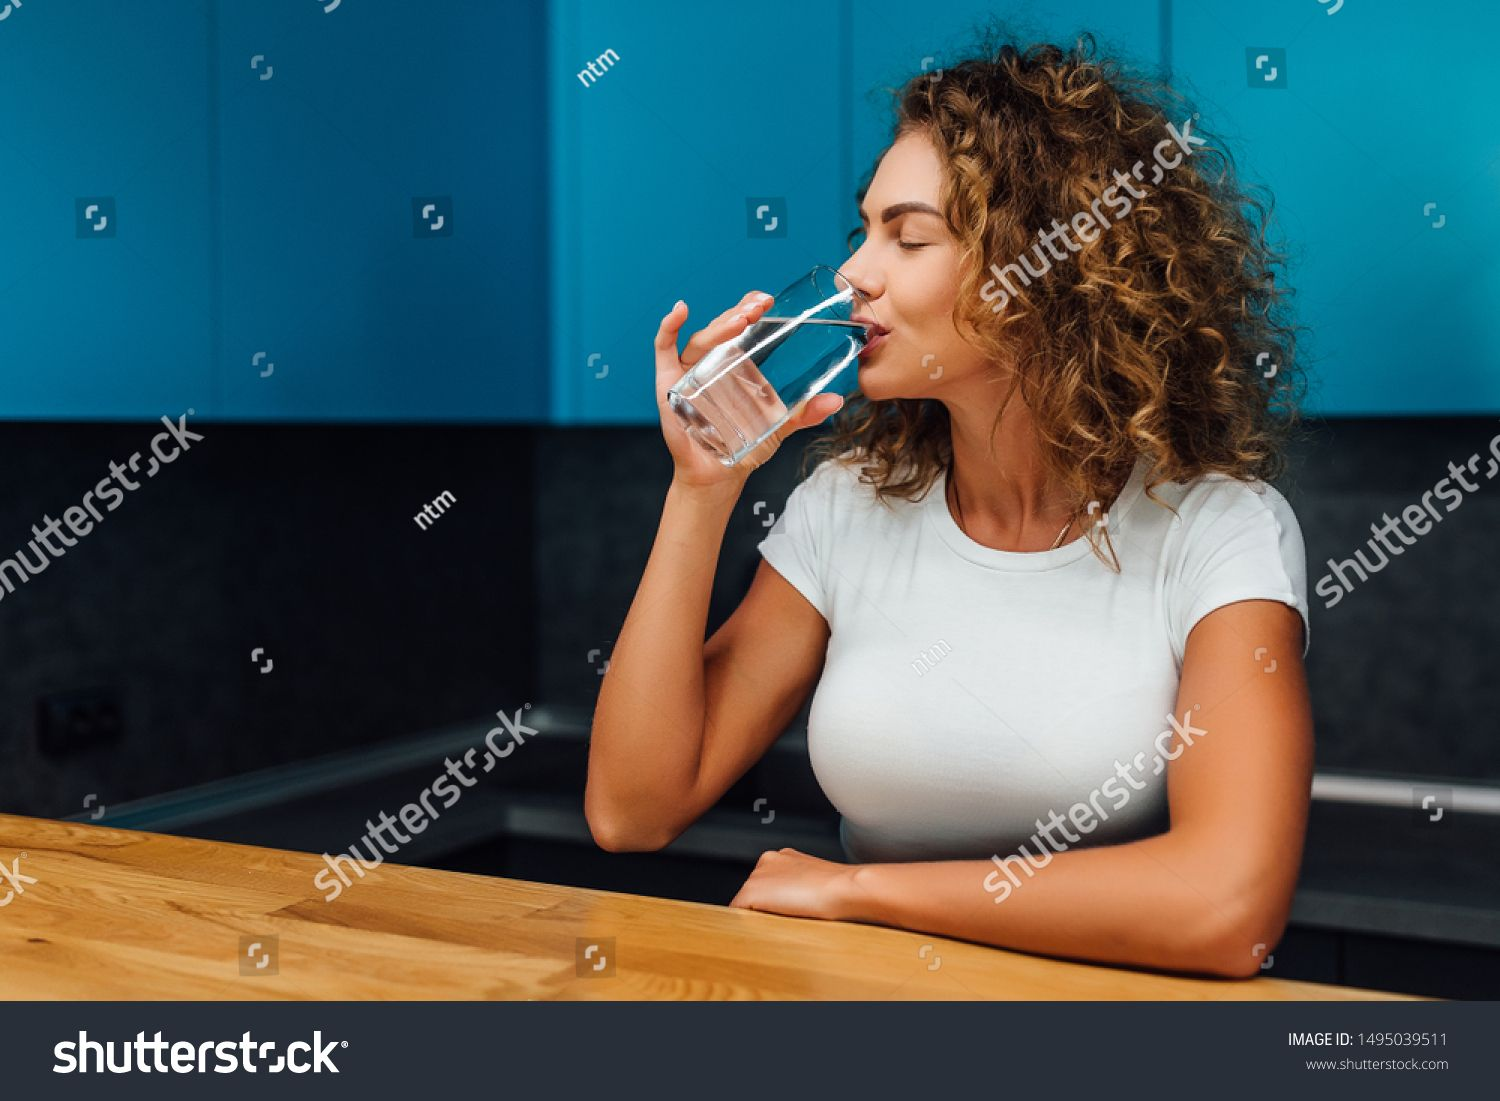 Beautiful blonde happy woman sitting with water drinks and health food at home. Vegan meal and detox concept. #Sponsored , #Aff, #sitting#water#drinks#woman